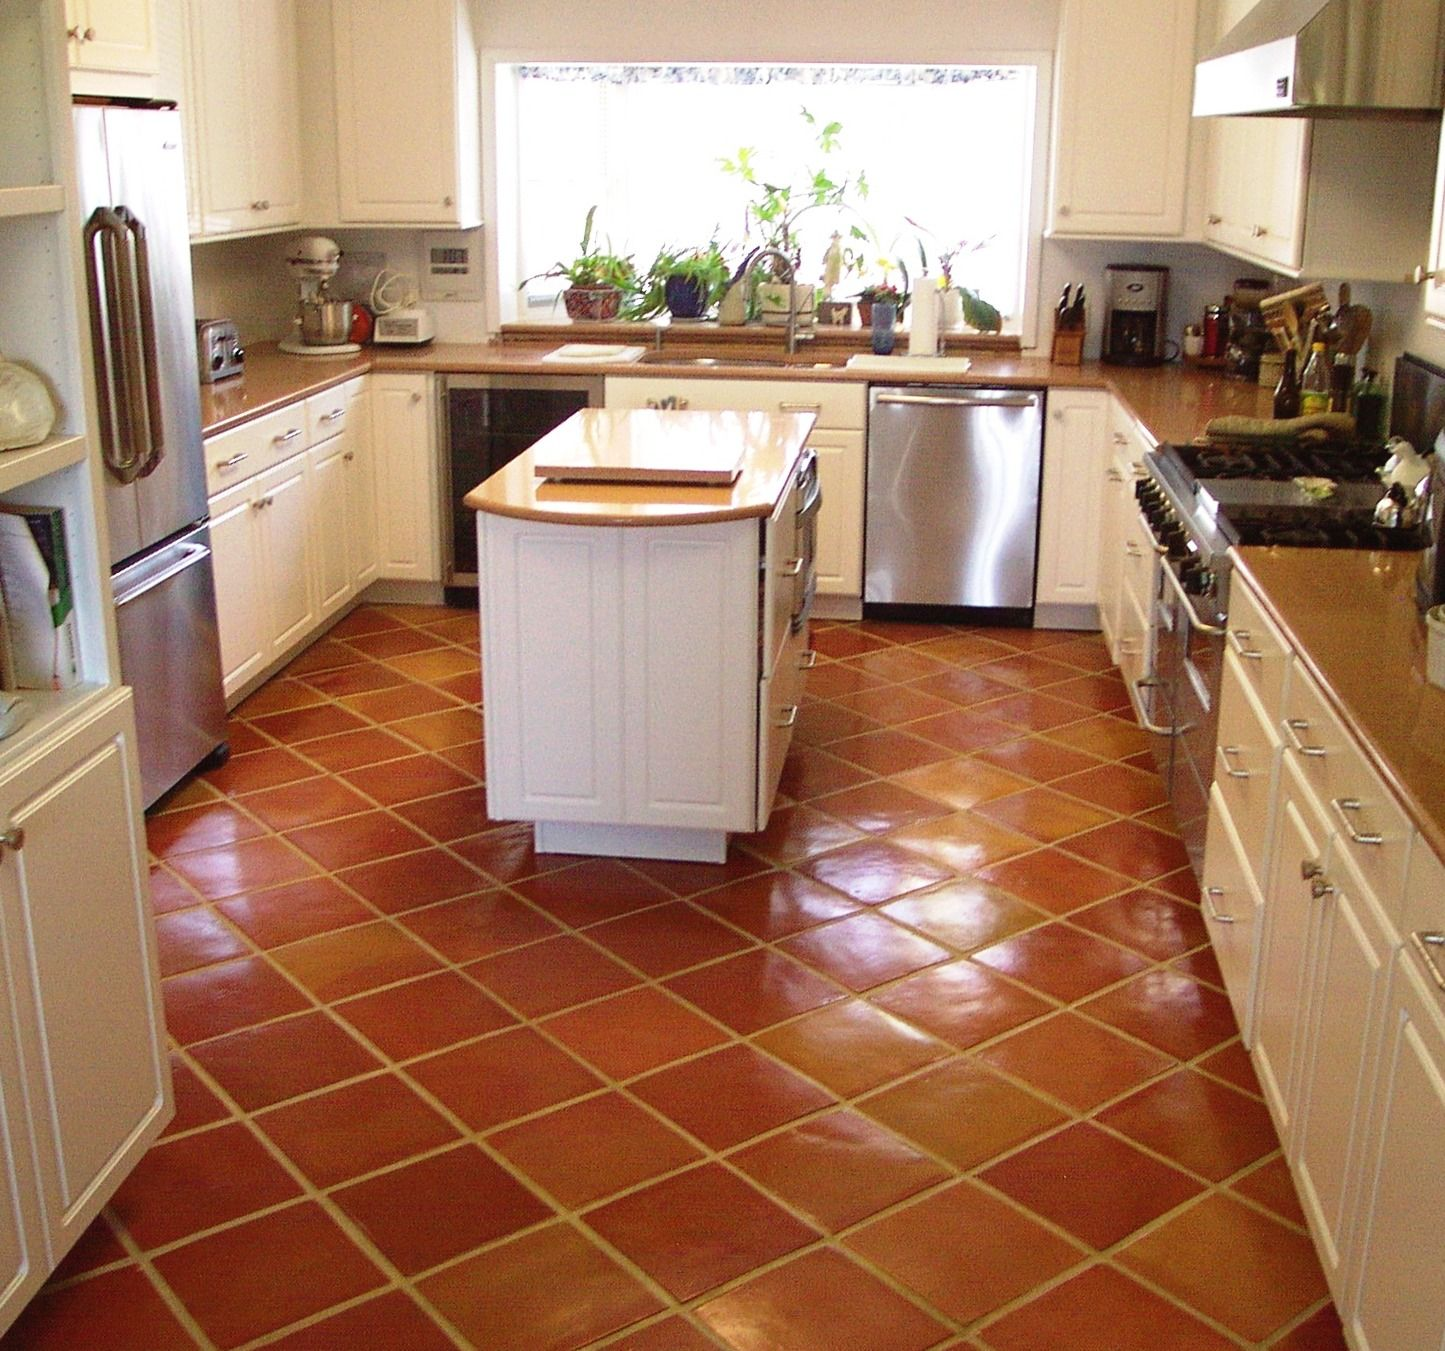 Terracotta Floor Tile Decorating Ideas Traditional Saltillo Terra Cotta Floor Tile In A Beautiful White